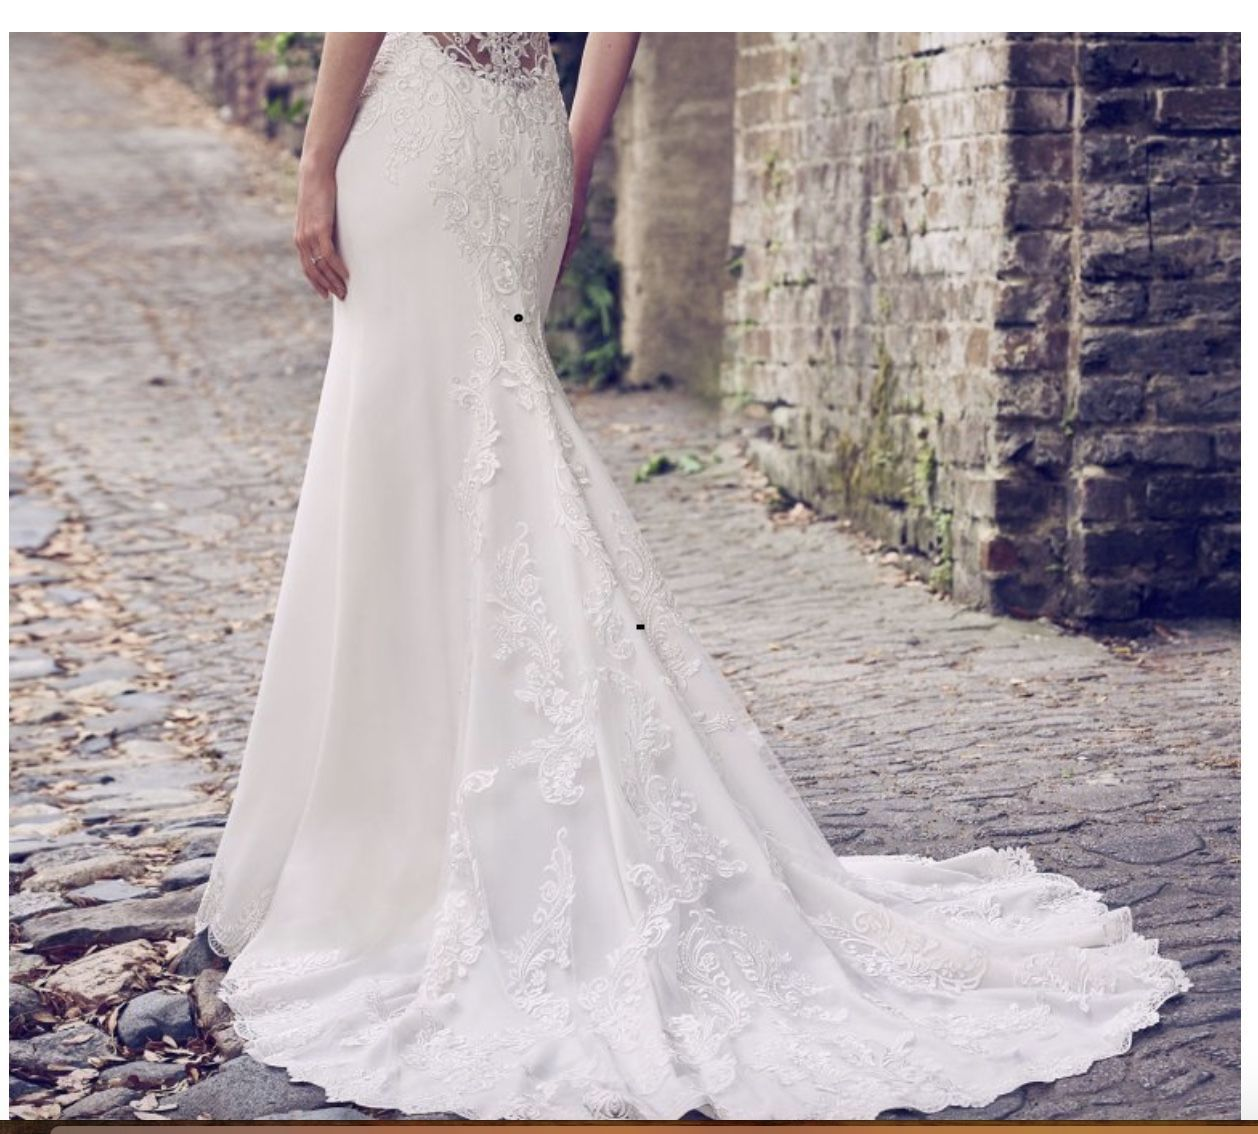 If You Are Wondering How To Bustle Or Hook Up Your Wedding Dress Train Then A Trainloop M Wedding Dress Train Bustle Wedding Dress Train Amazing Wedding Dress